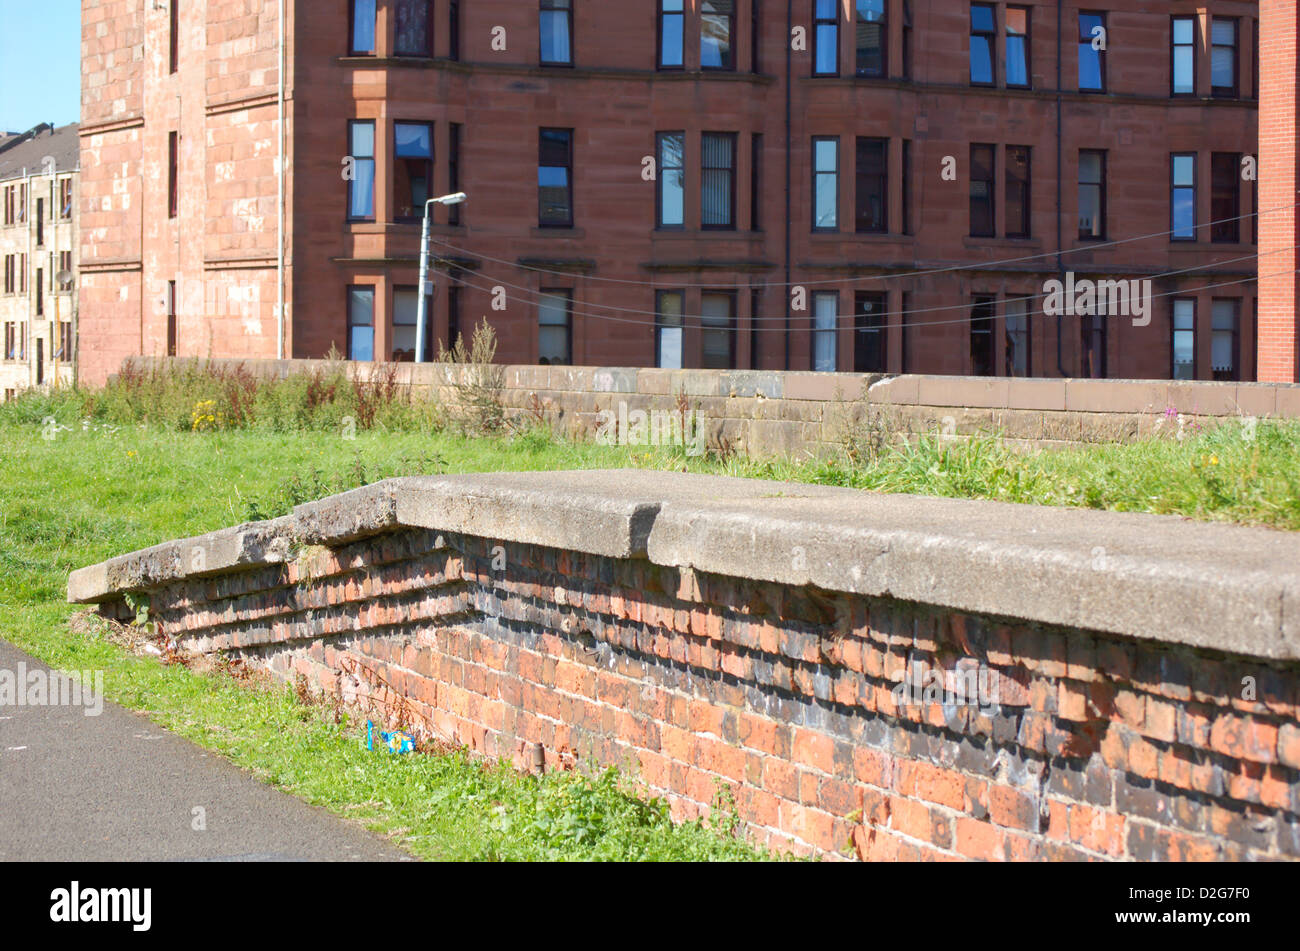 Tenement buildings next to abandoned railway line in Glasgow, Scotland - Stock Image